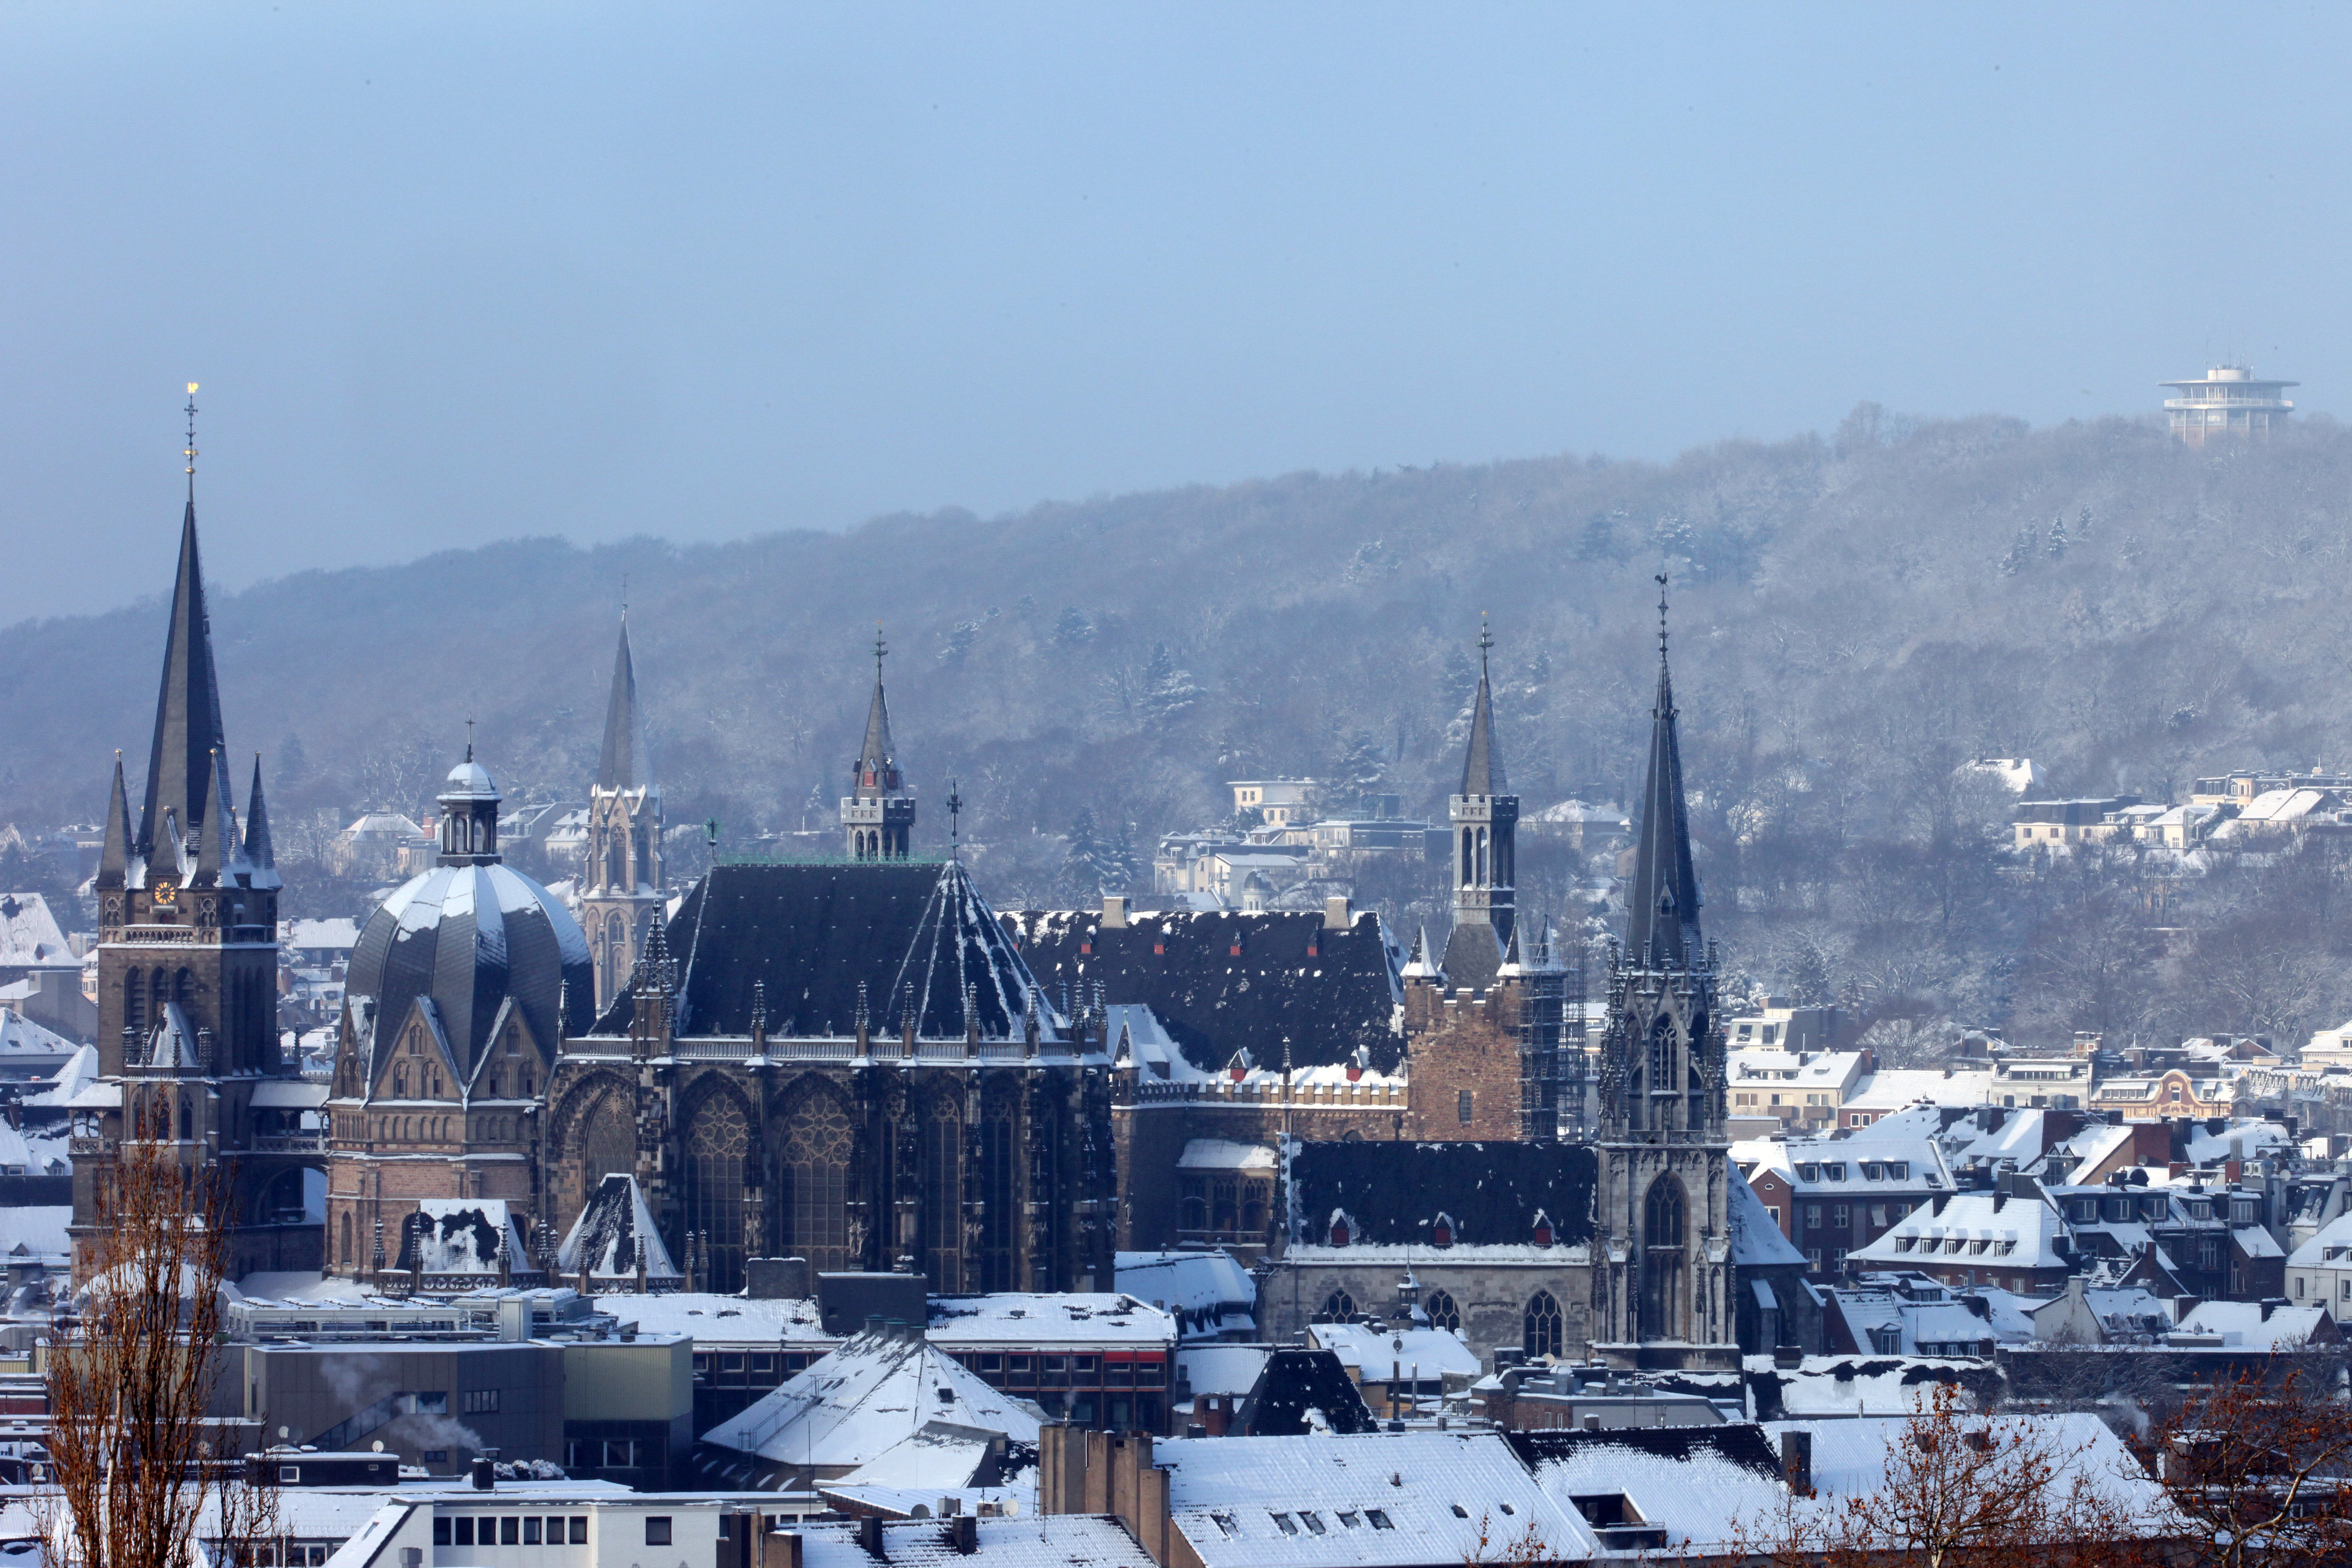 Aachen in winter time